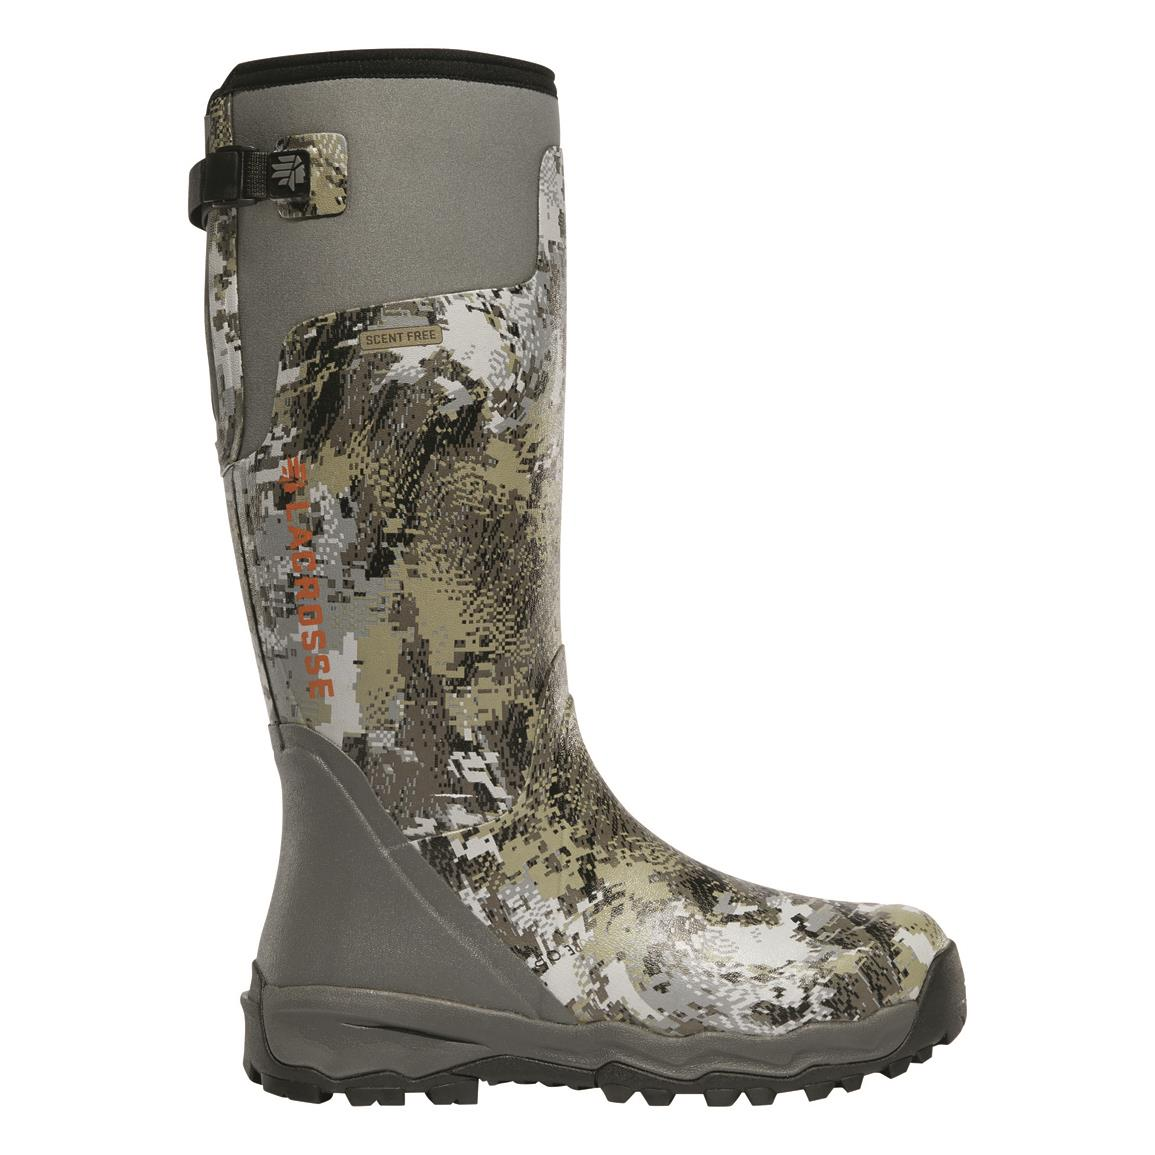 "LaCrosse Men's Alphaburly Pro 18"" Waterproof Rubber Hunting Boots, Camo, GORE™ OPTIFADE™ Elevated II"